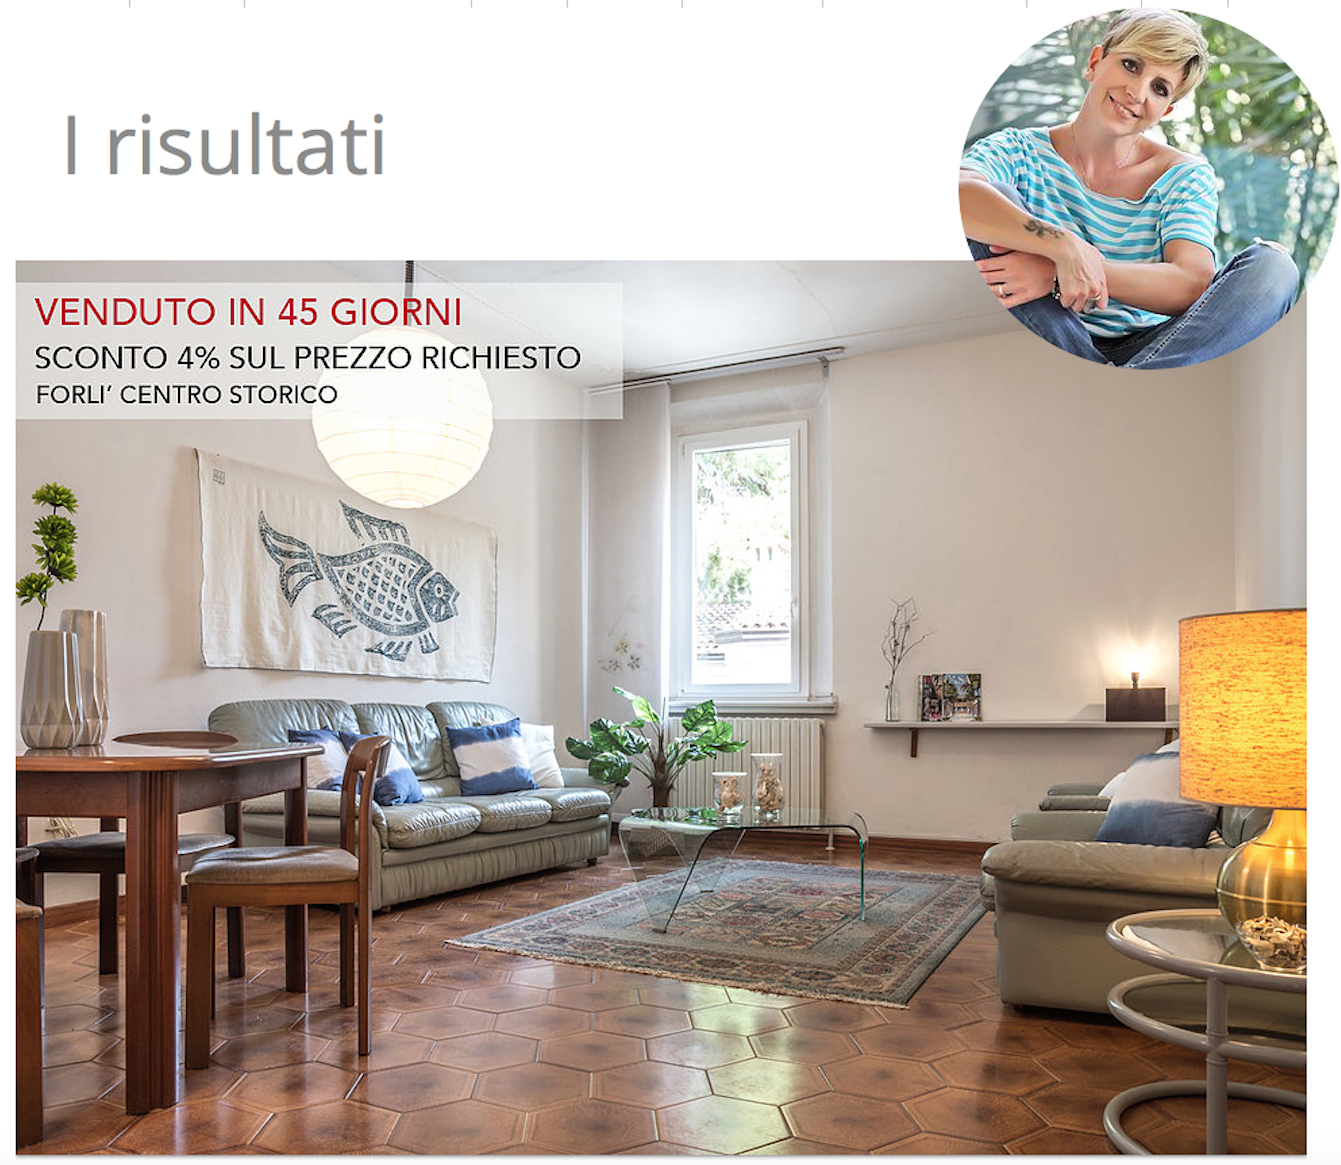 HOME STAGING ROMAGNA MIRNA CASADEI IMMOBILIARE REAL ESTATE18.png